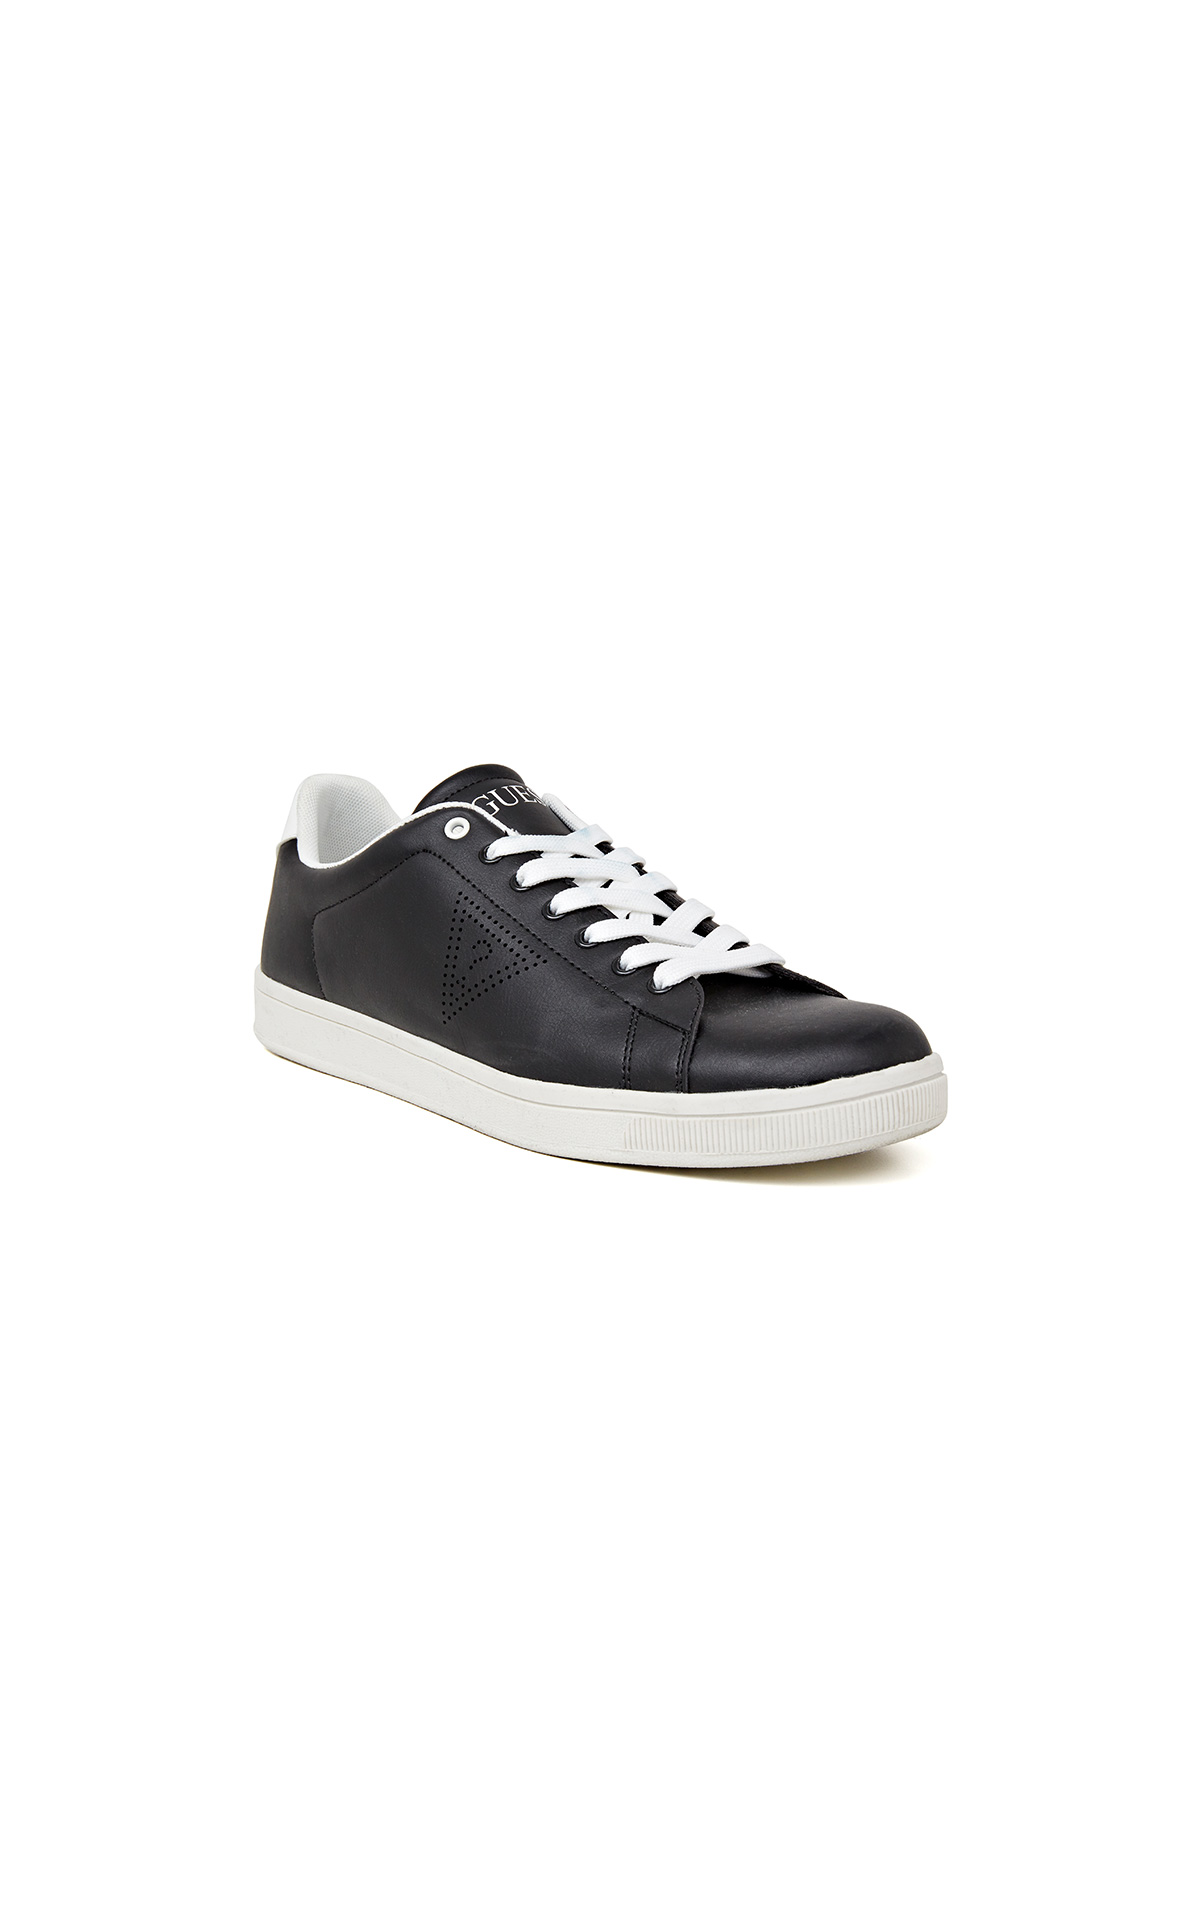 Black New Allan sneakers for man Guess